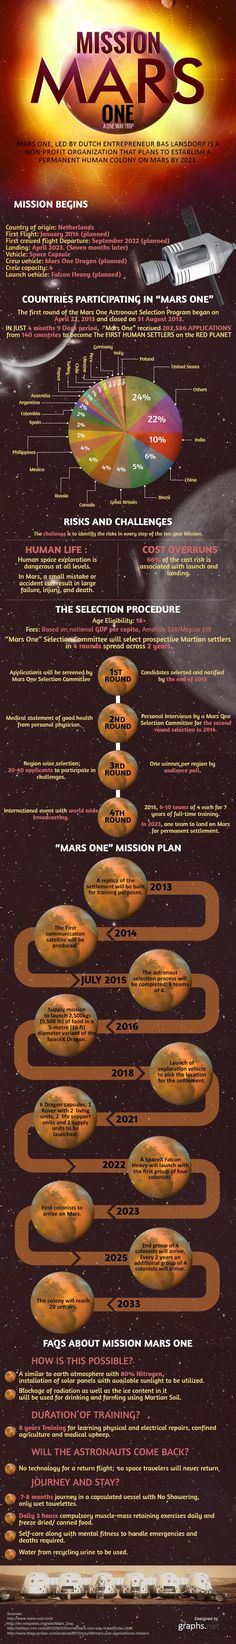 "Mars One mission infographic. If you wanted to go to Mars and not come back, they're not accepting any more applications. But the infographic explains the plan. It might make you think that you'd prefer to pass on this anyhow. You can learn more about space flight in Mary Roach's book ""Packing for Mars"". This review will tell you about it: http://www.bellaonline.com/articles/art182111.asp"